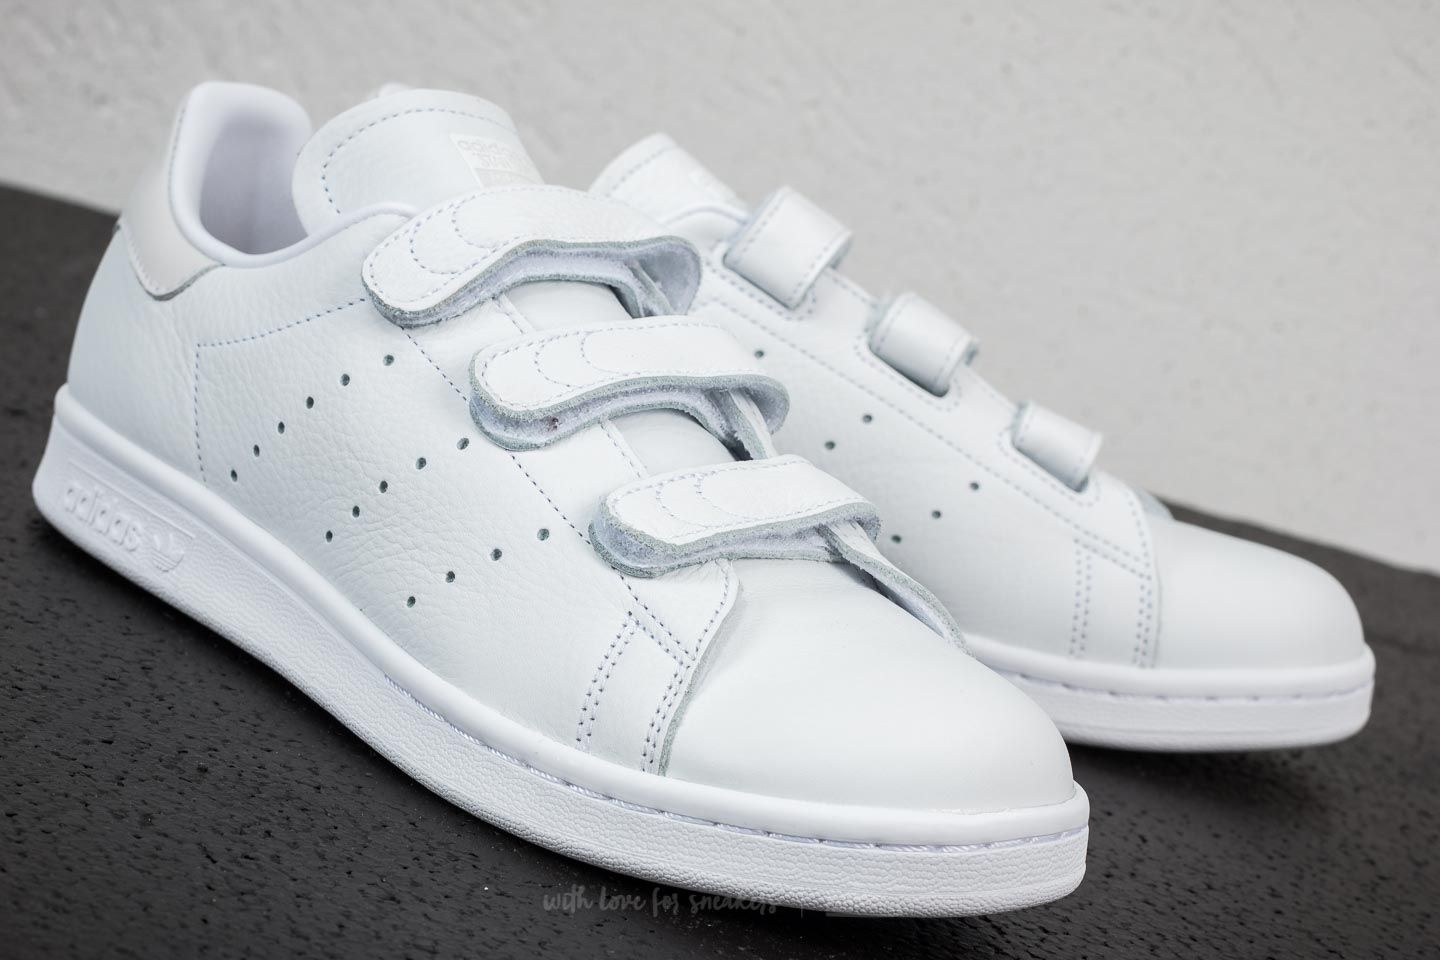 separation shoes 9b8d0 5cad2 adidas Stan Smith CF Ftw White/ Ftw White/ Ftw White | Footshop